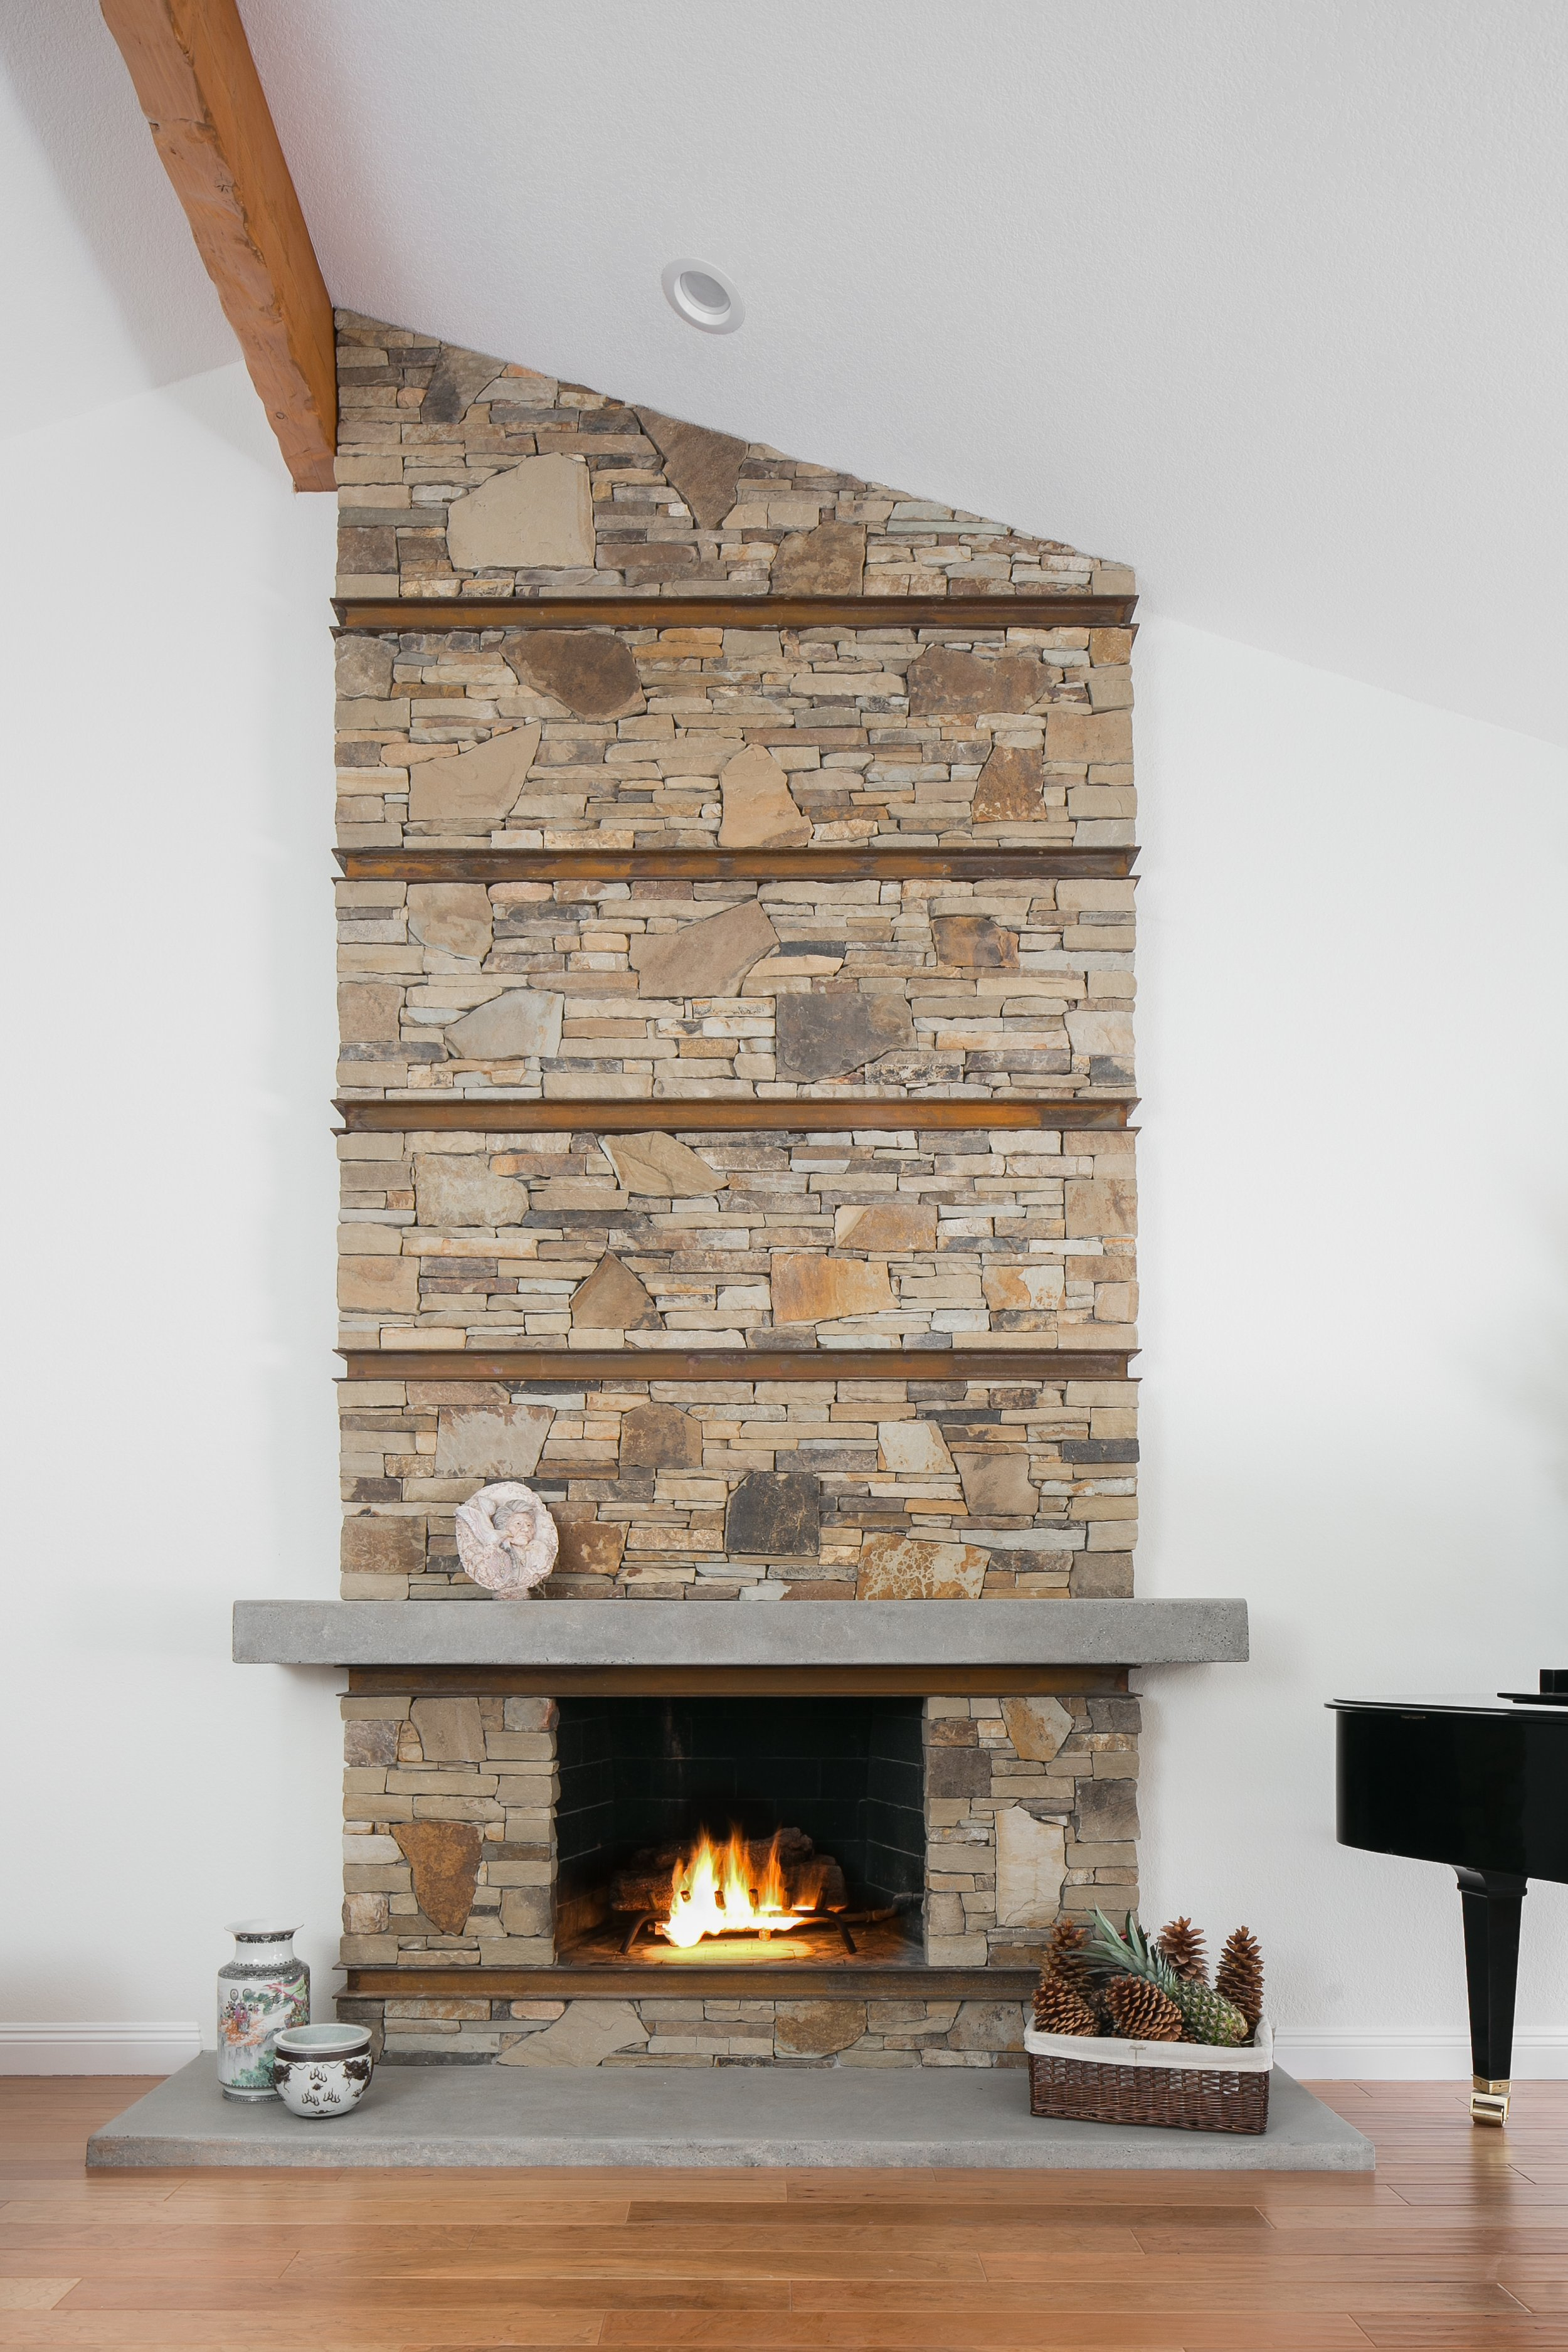 Fireplace surround, tastefully made out of stacked stone with rusted channels and a polished concrete mantel and hearth, elevating the living room in all its simplicity